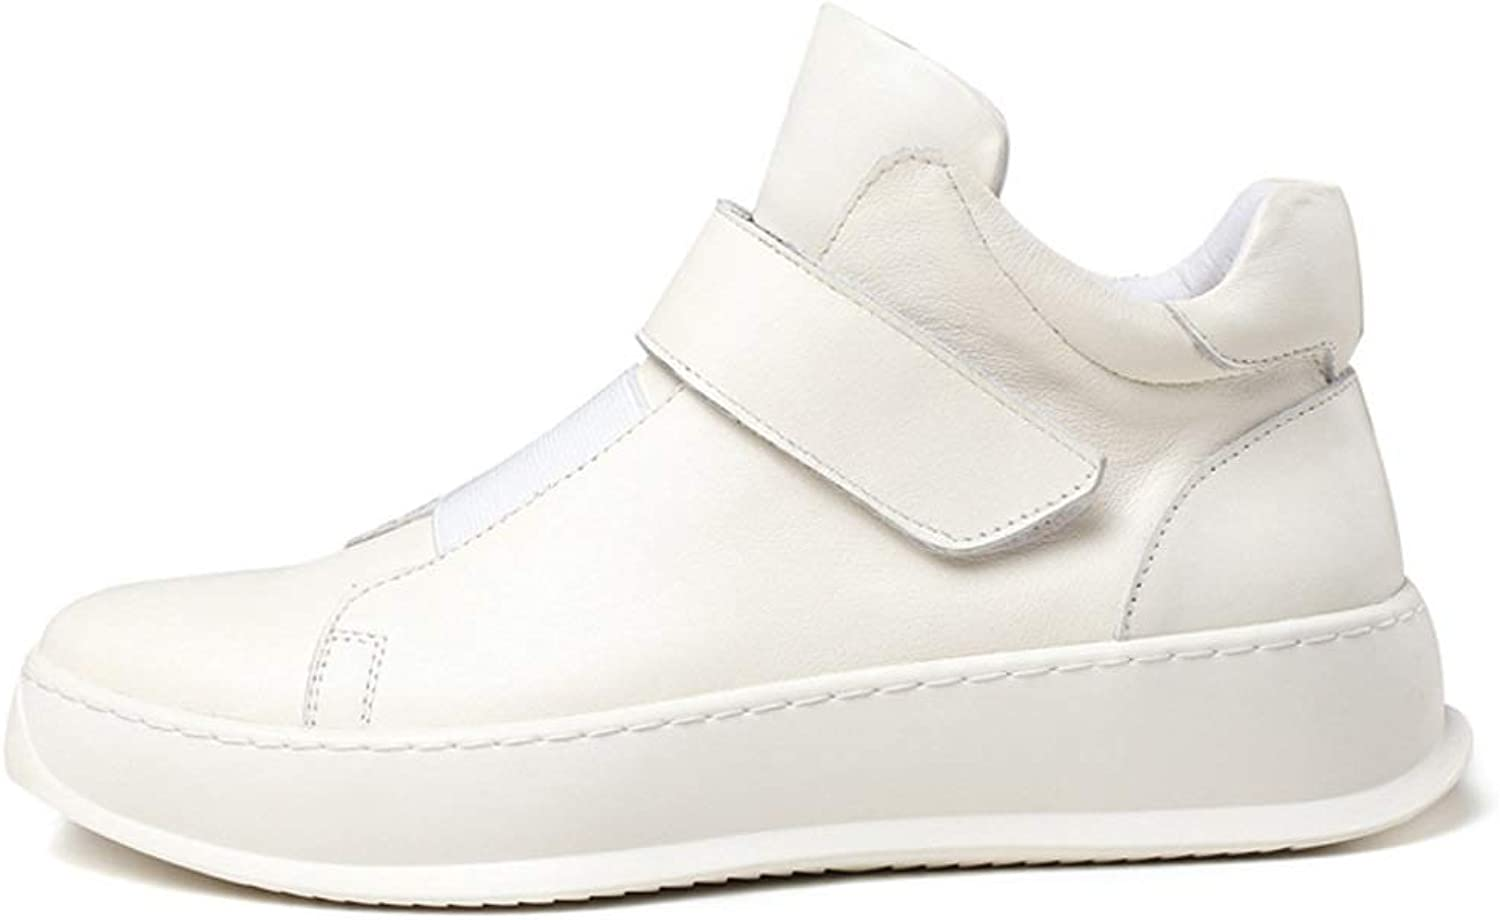 HWG-GAOYZ shoes Men's Martin Boots Ankle Footwear Autumn Winter Leather Casual Sports shoes Non-slip,White-41